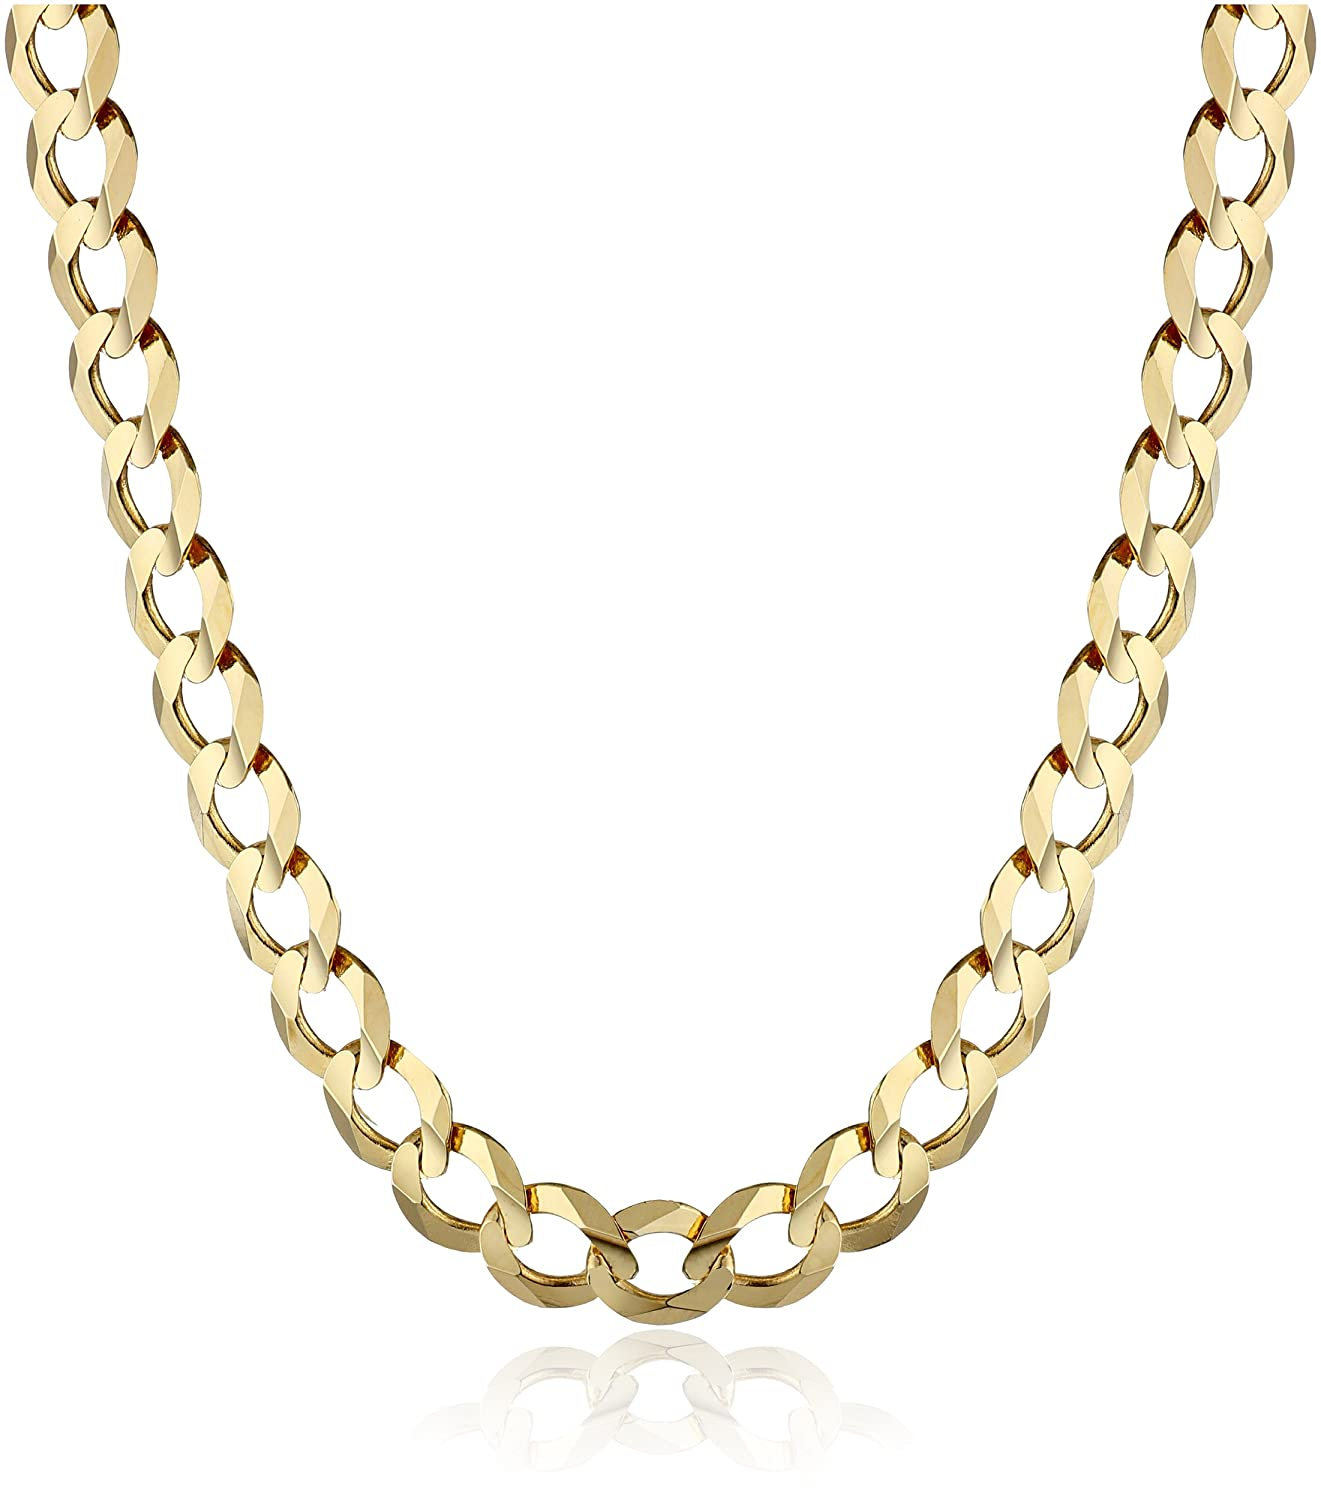 foxtail necklace yellow chains chain inch product wide link gold